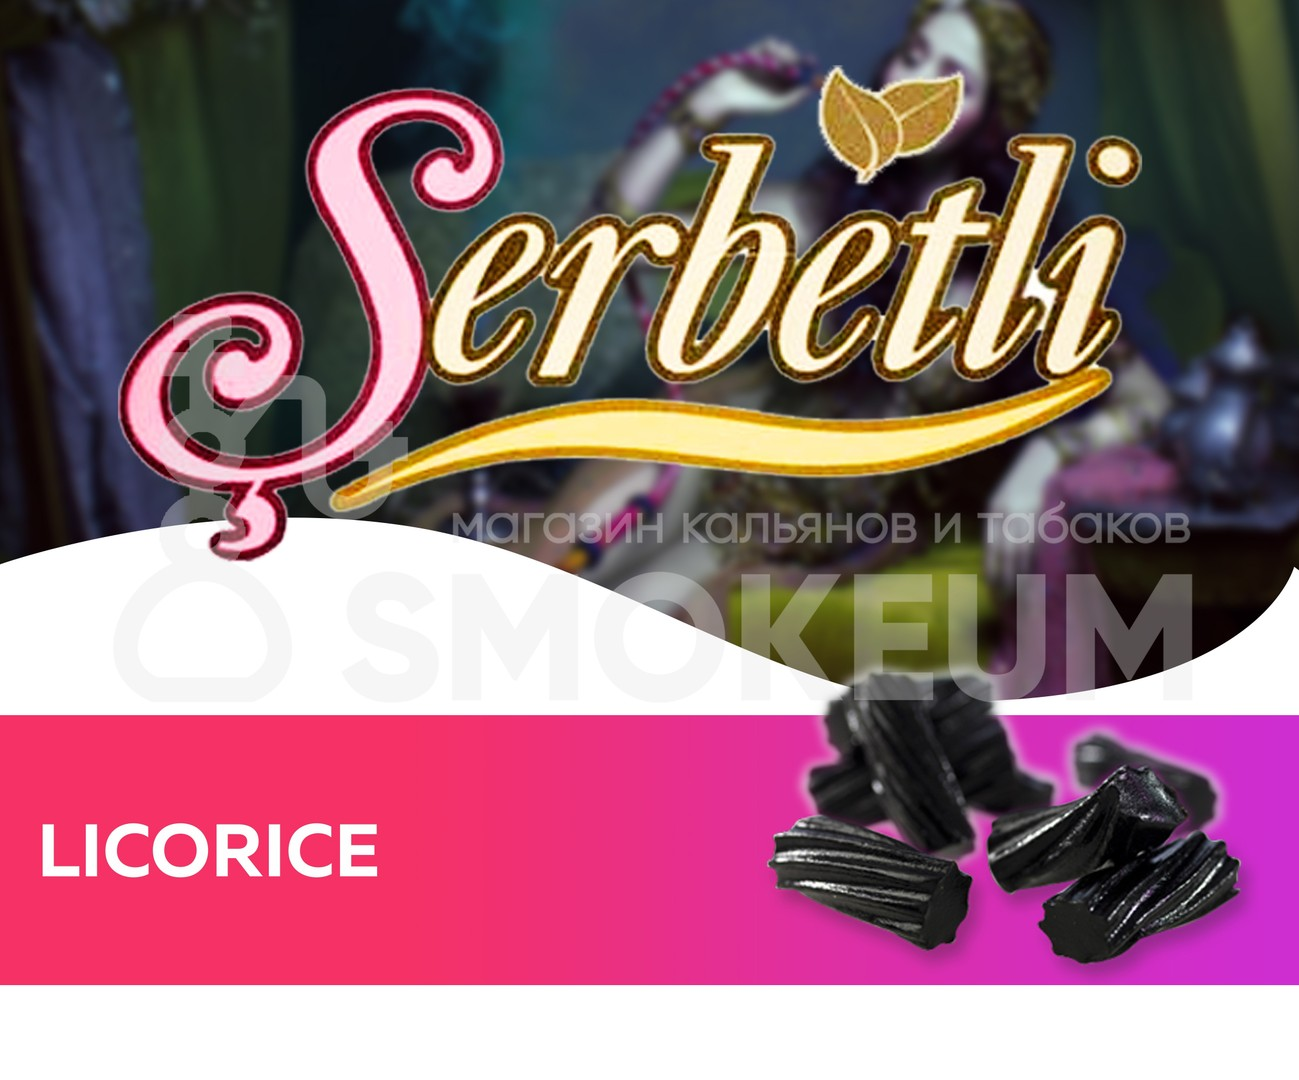 Табак Serbetli - Licorice (Лакрица) 50 гр